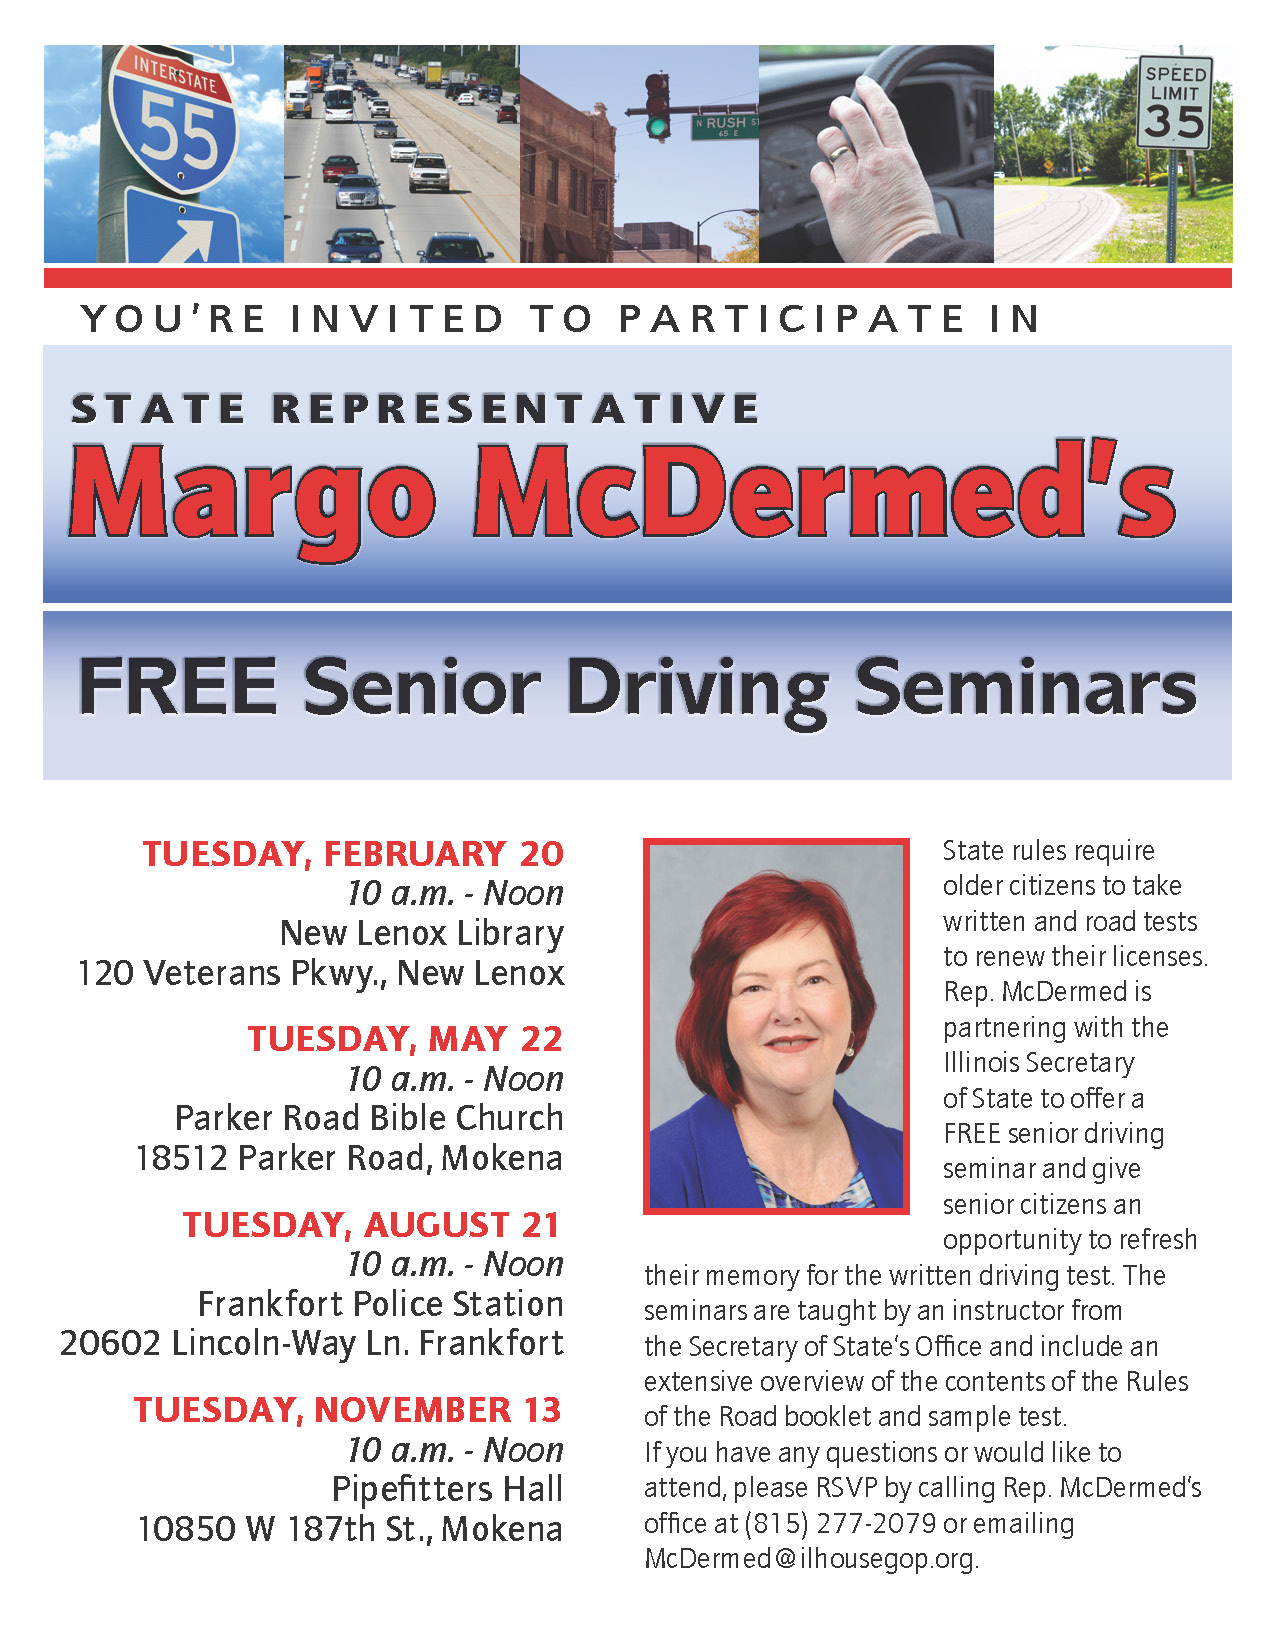 mcdermed_driving_seminars_flyer_2018.jpg